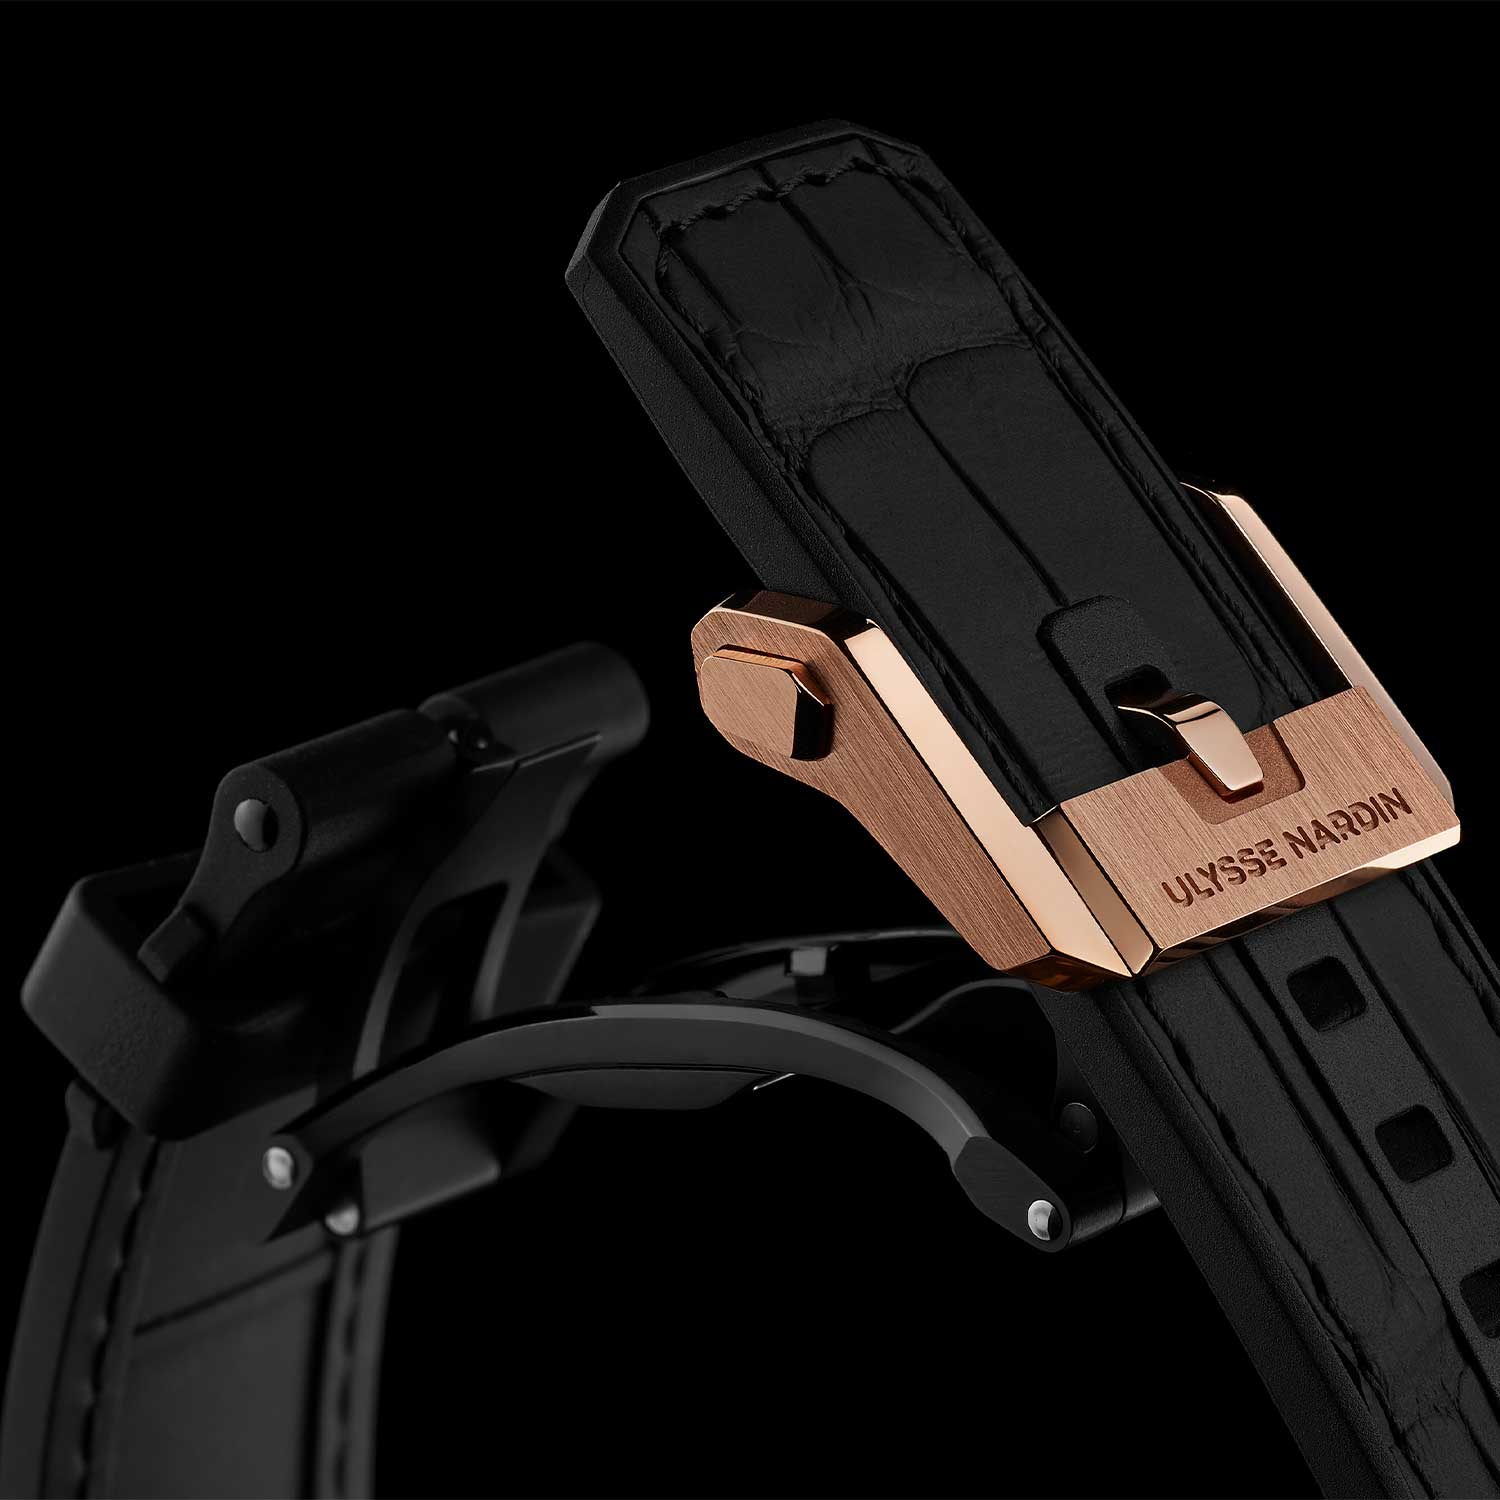 The self-deploying buckle used for the Ulysse Nardin Blast